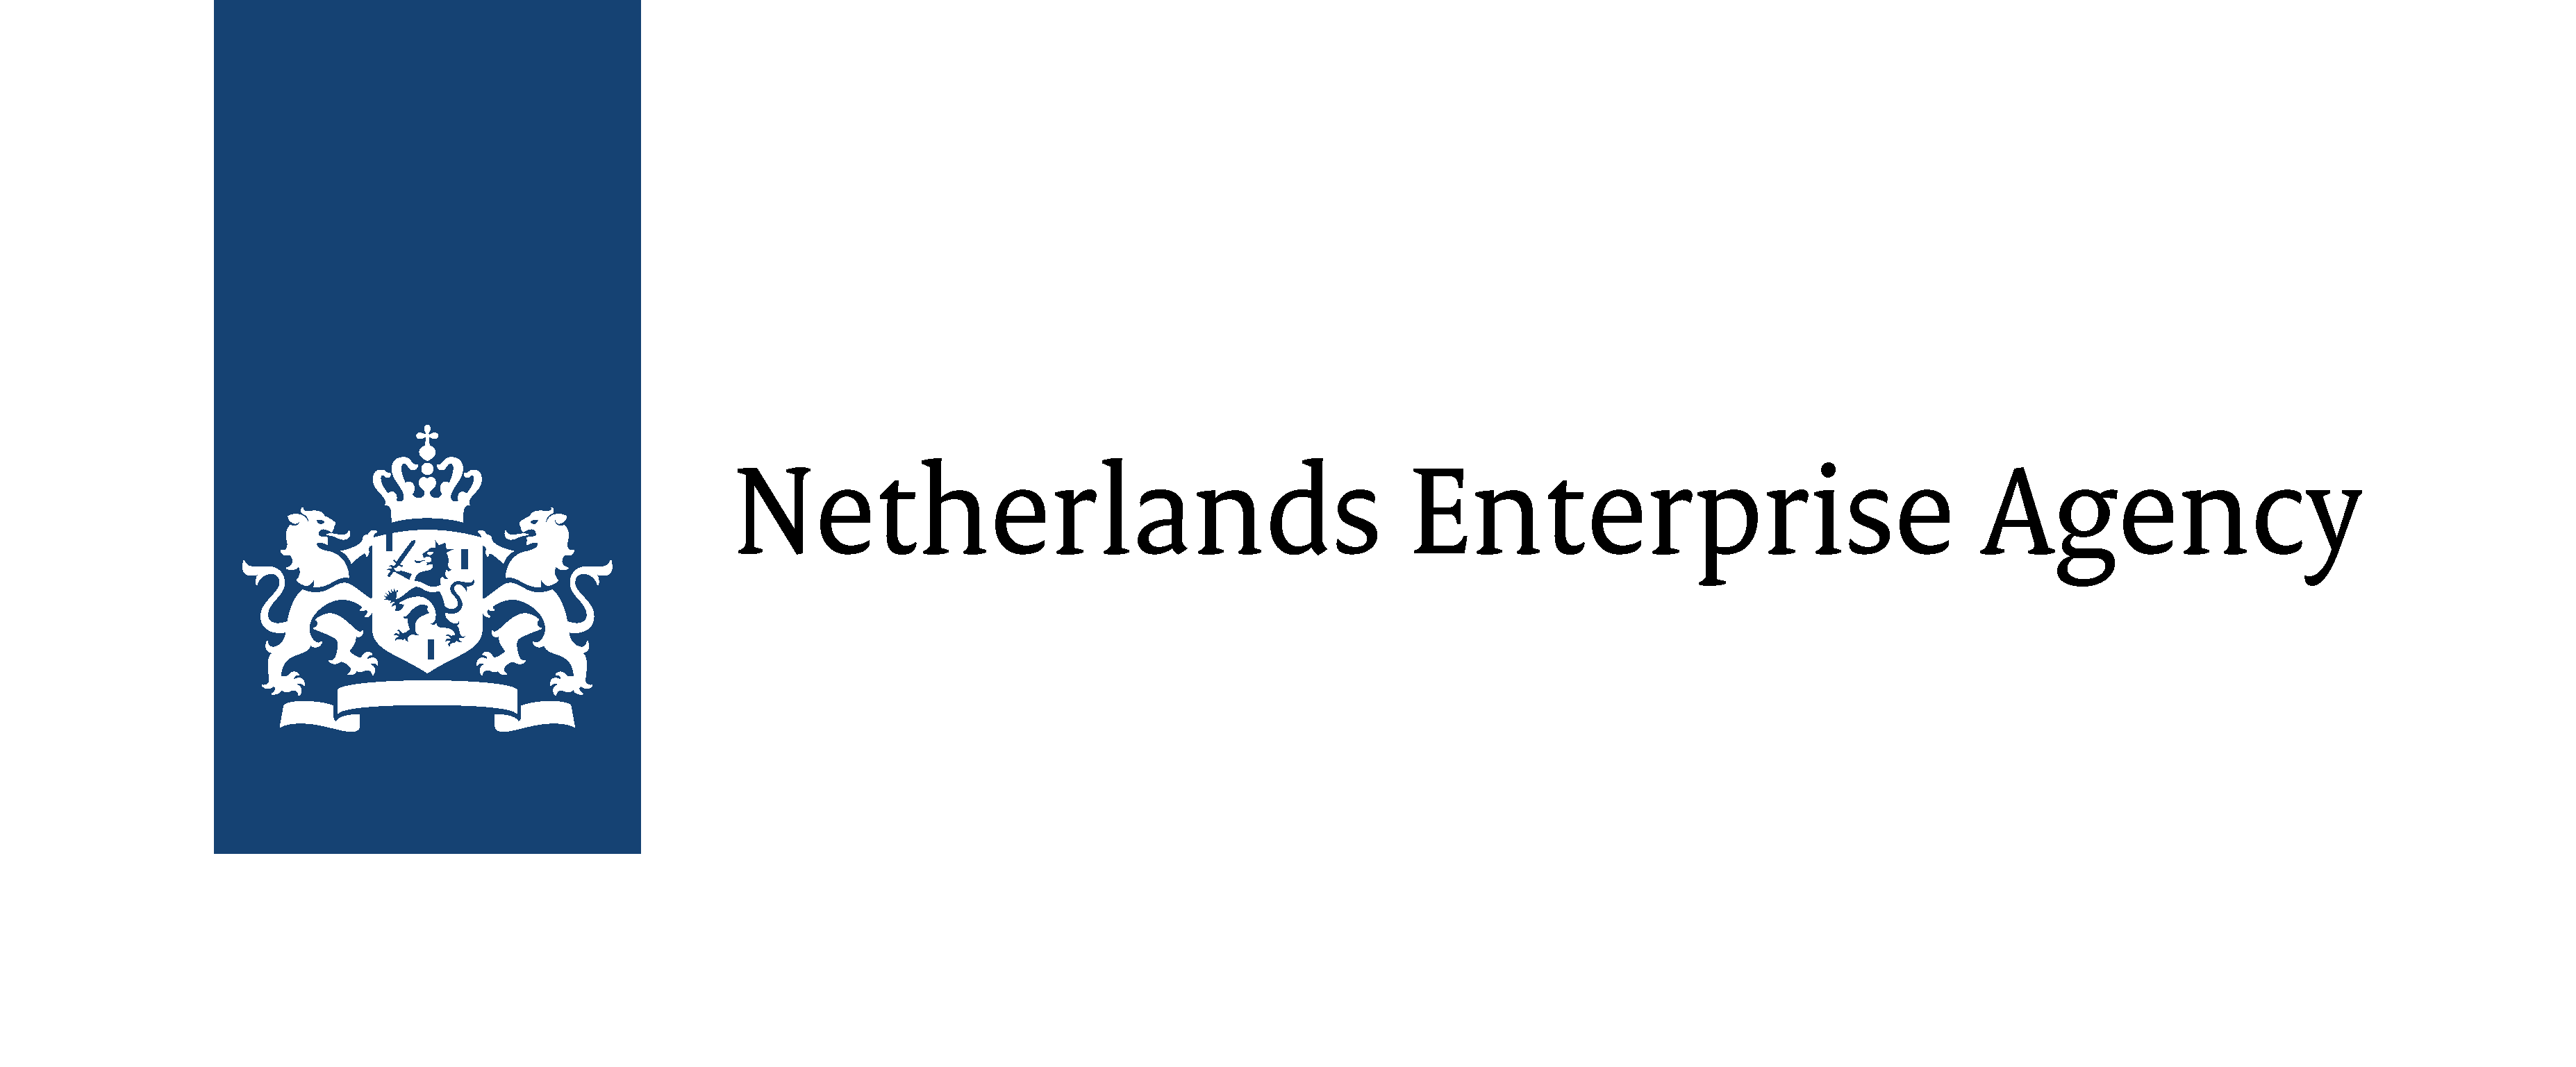 RVO/Netherlands Enterprise Agency